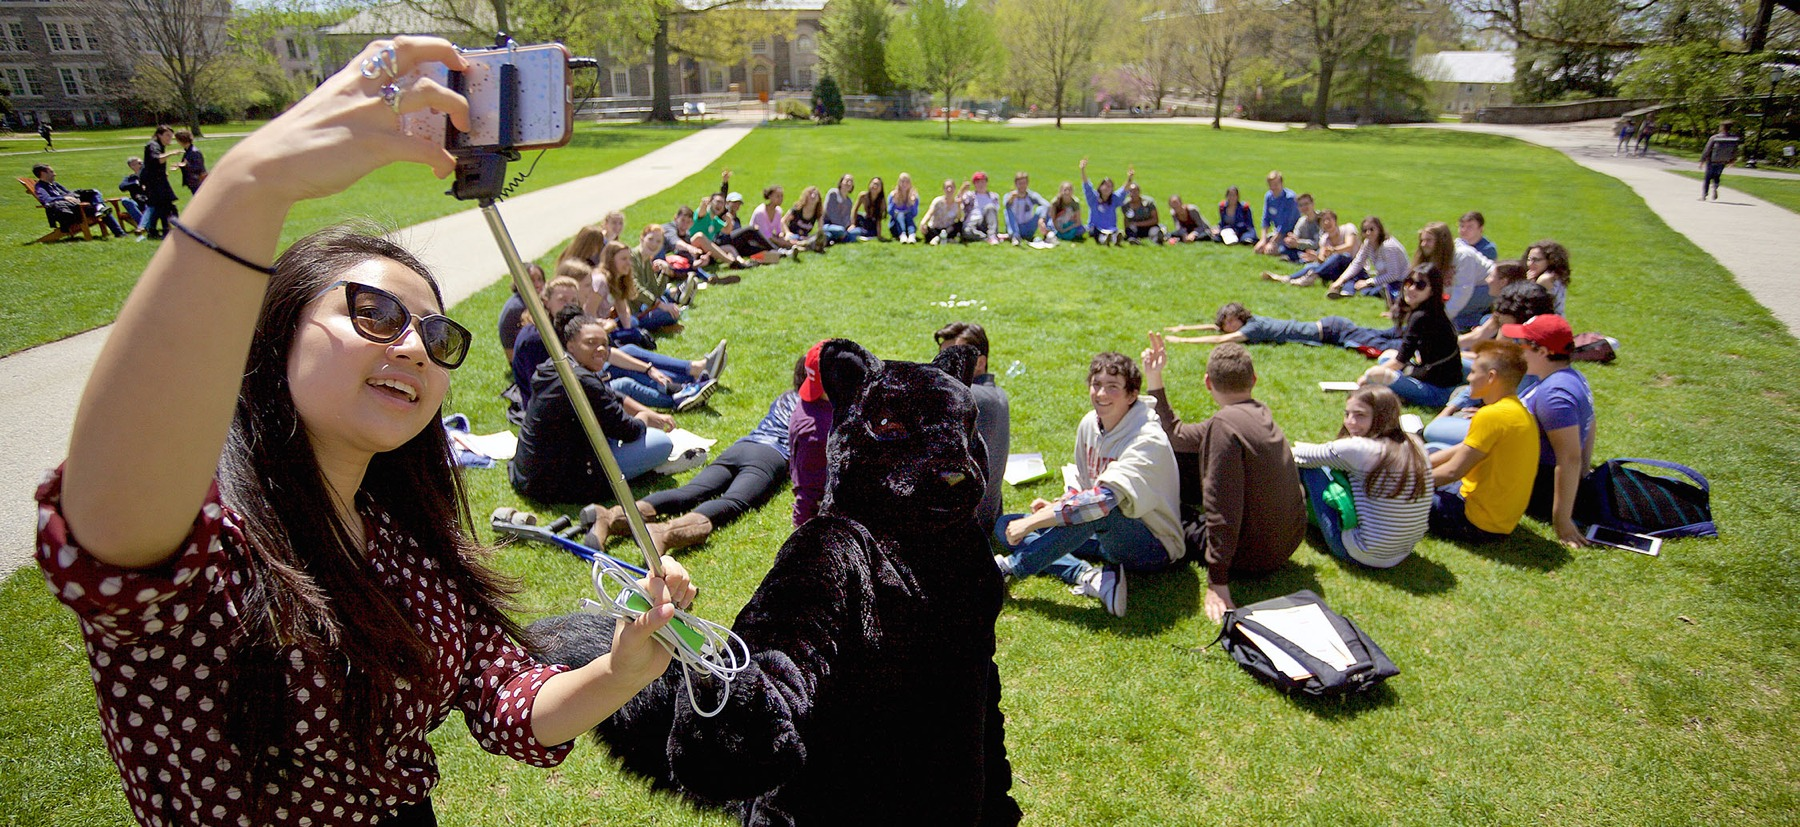 Black squirrel mascot taking a selfie with students sitting in a circle on grass.